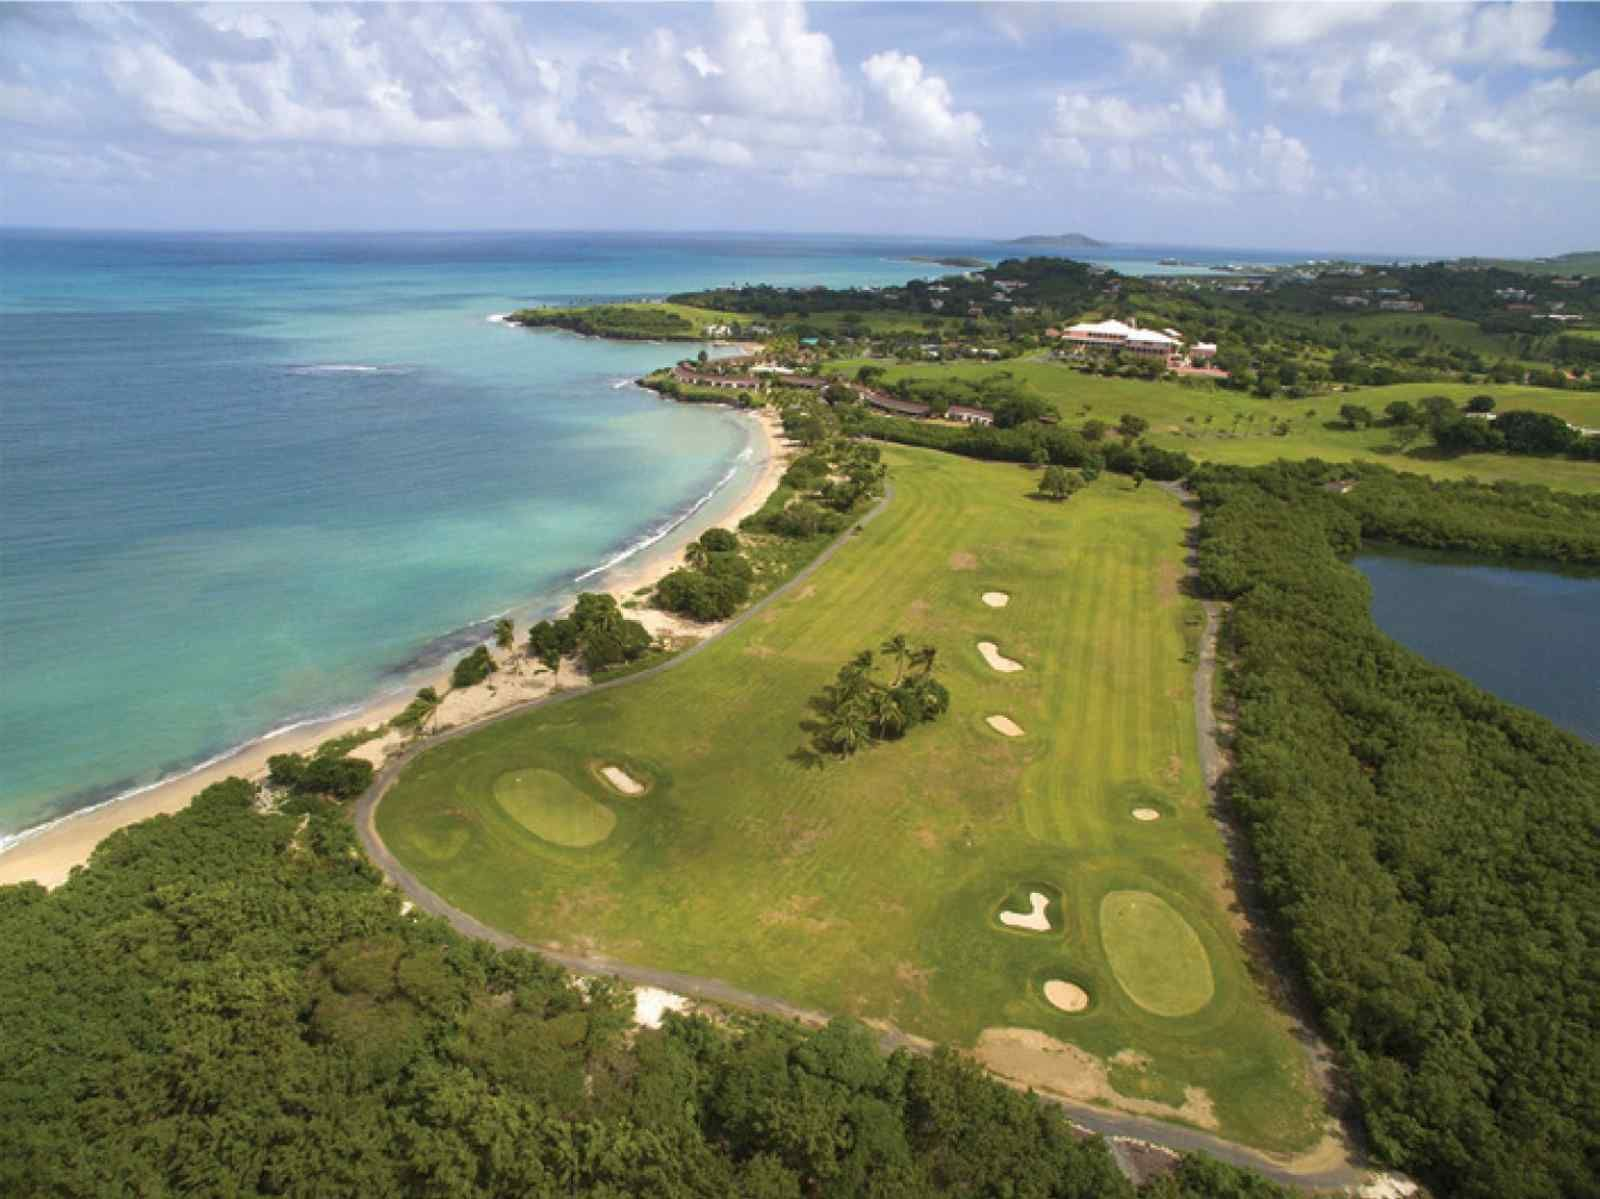 image of an aerial view of a golf course along a tropical seashore